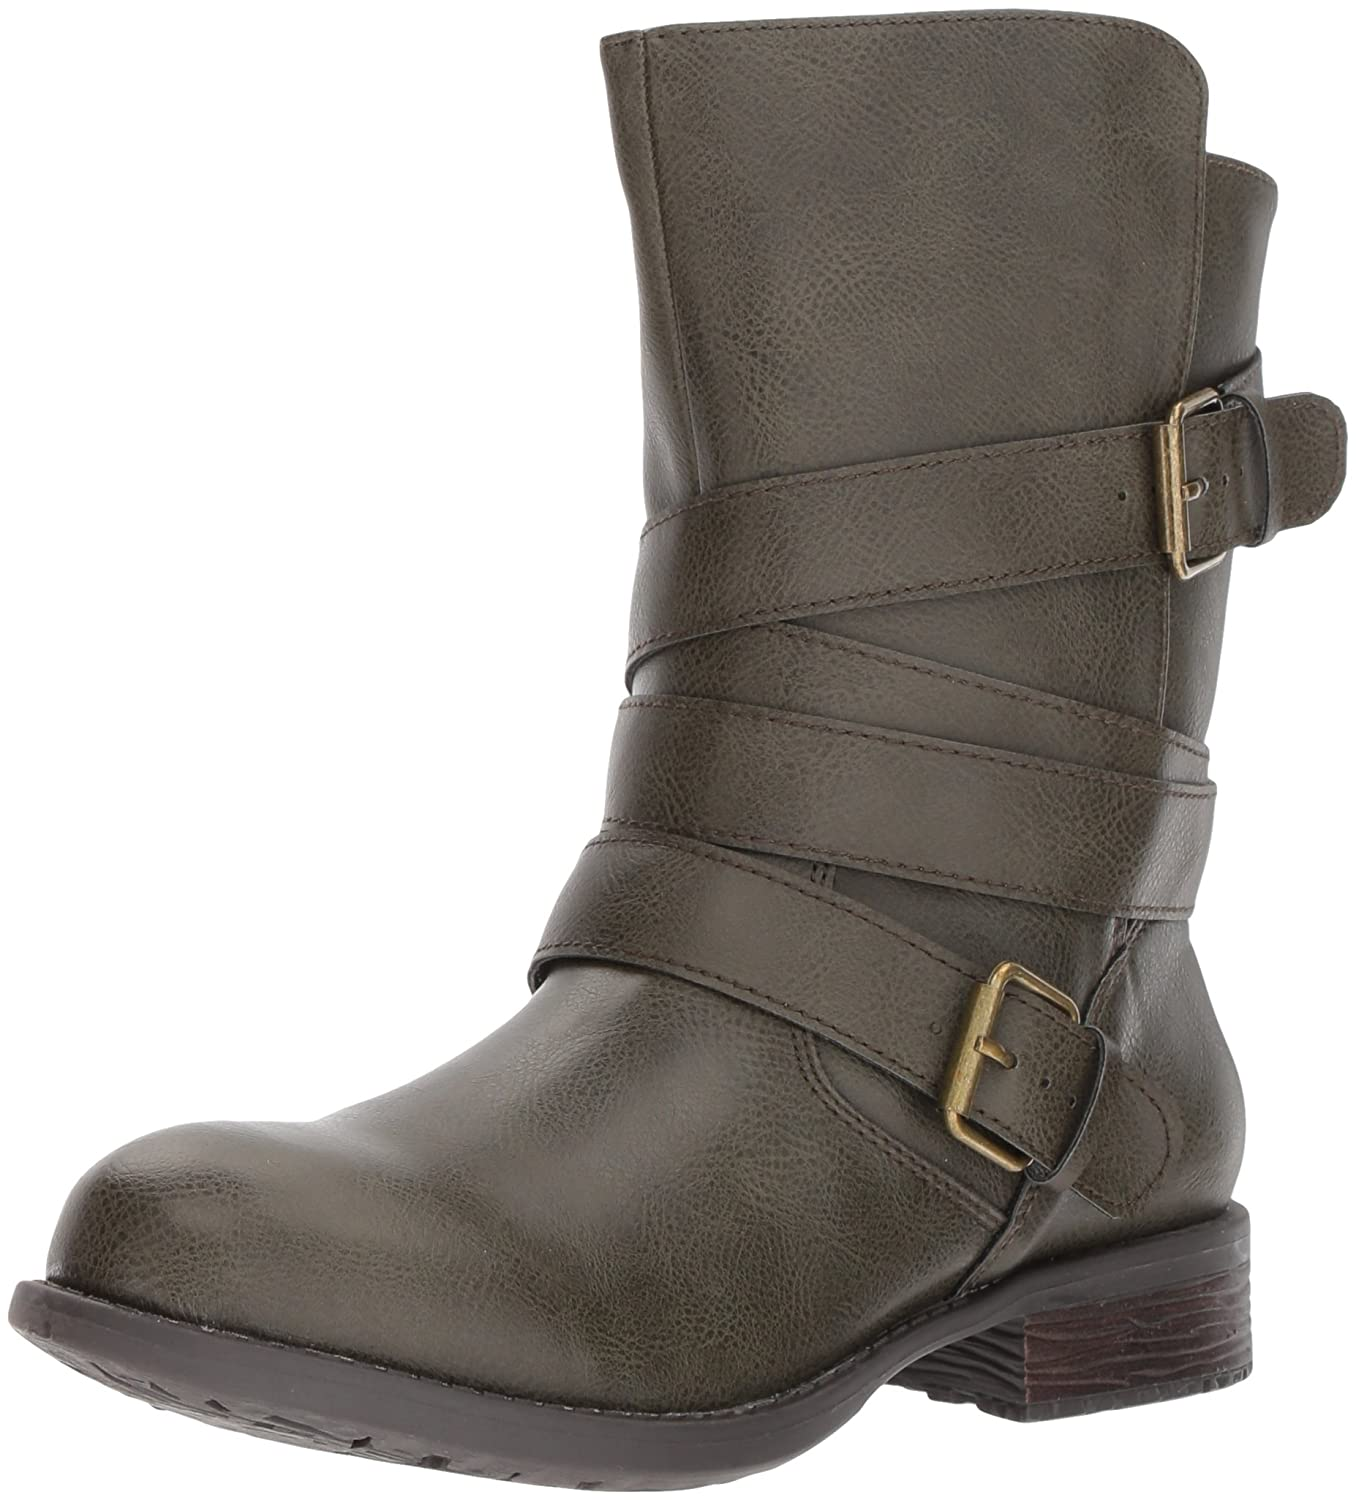 Rampage Women's Islet Motorcycle Buckle Mid Calf Low Heel Boot B076HHN8MF 11 B(M) US|Olive Polyurethane